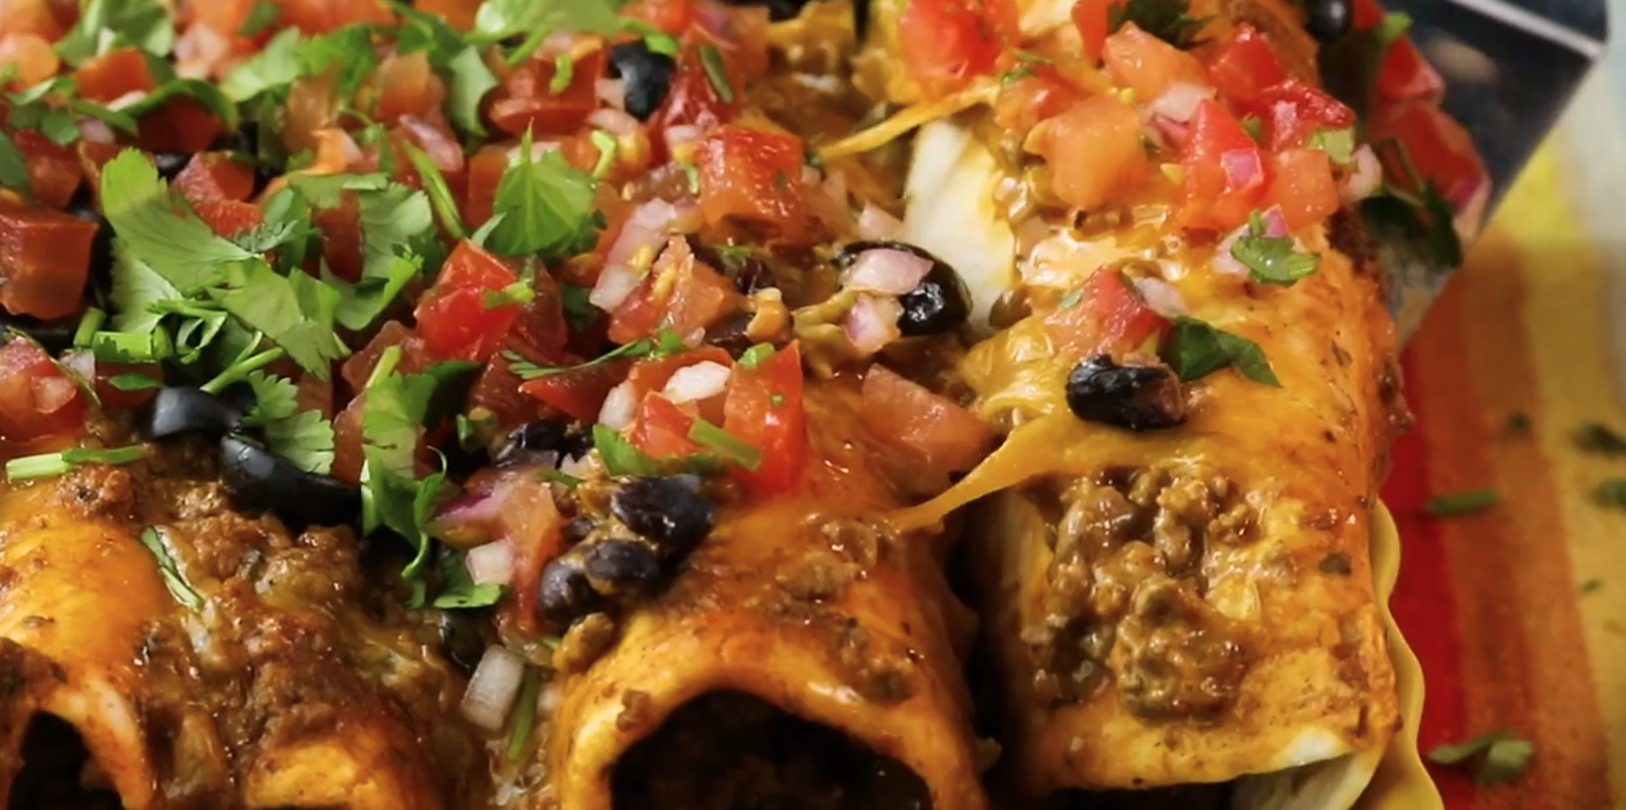 6 Biggest Enchilada Mistakes You're Making and How to Fix Them